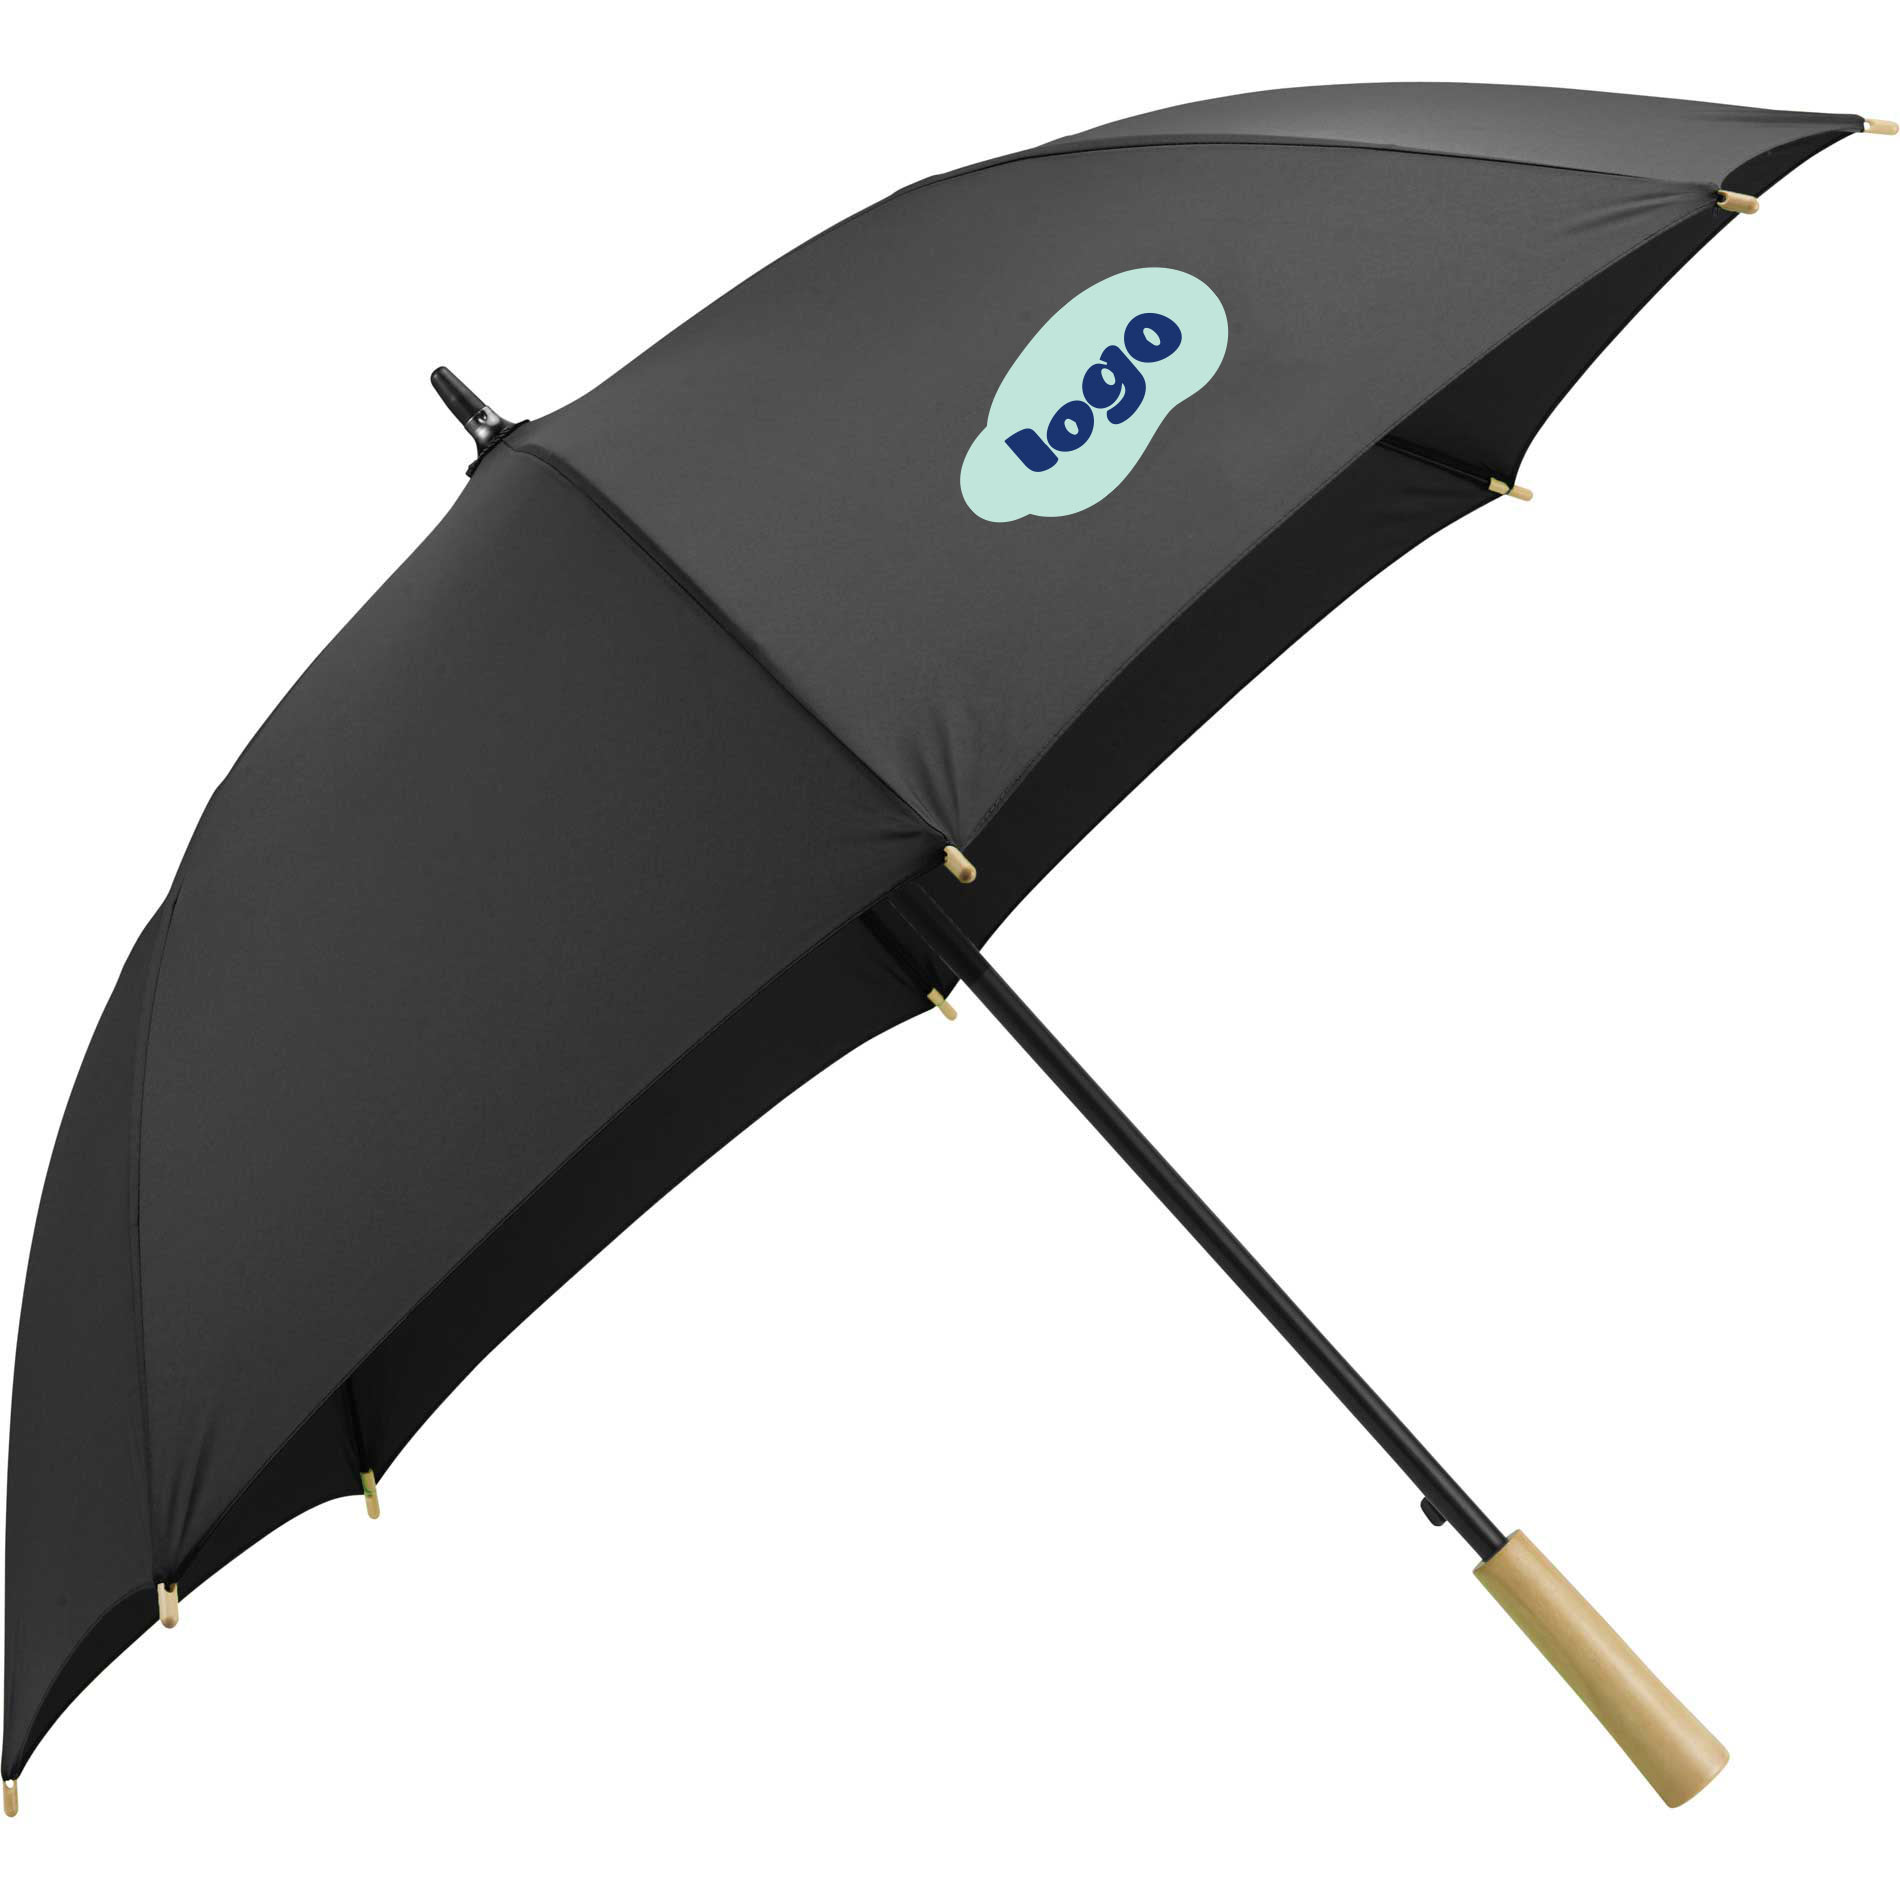 268379 48 recycled auto open umbrella two color one location imprint